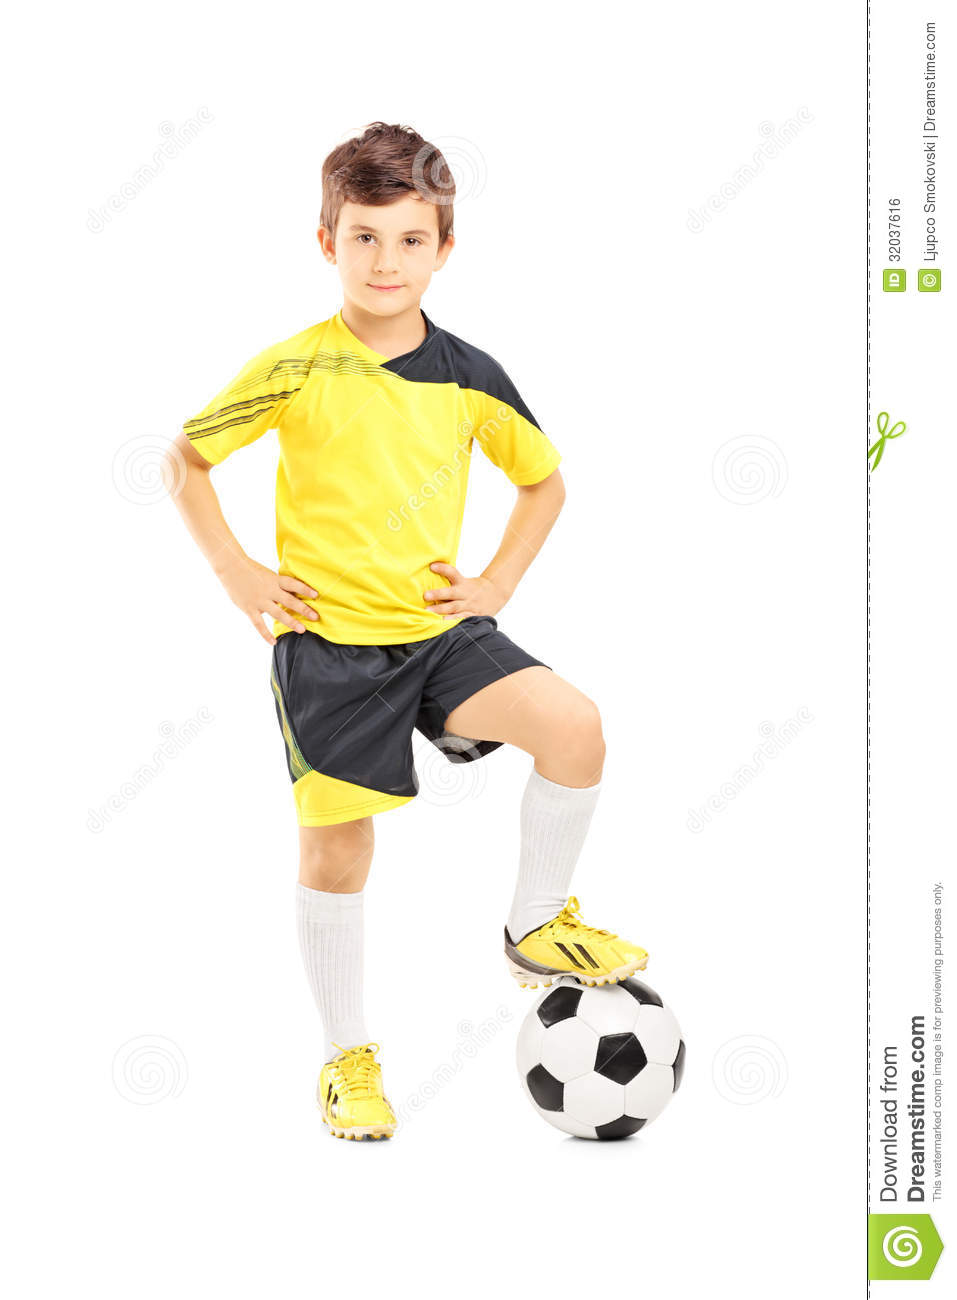 Full Length Portrait Of A Kid In Sportswear Posing With A Ball Royalty ...